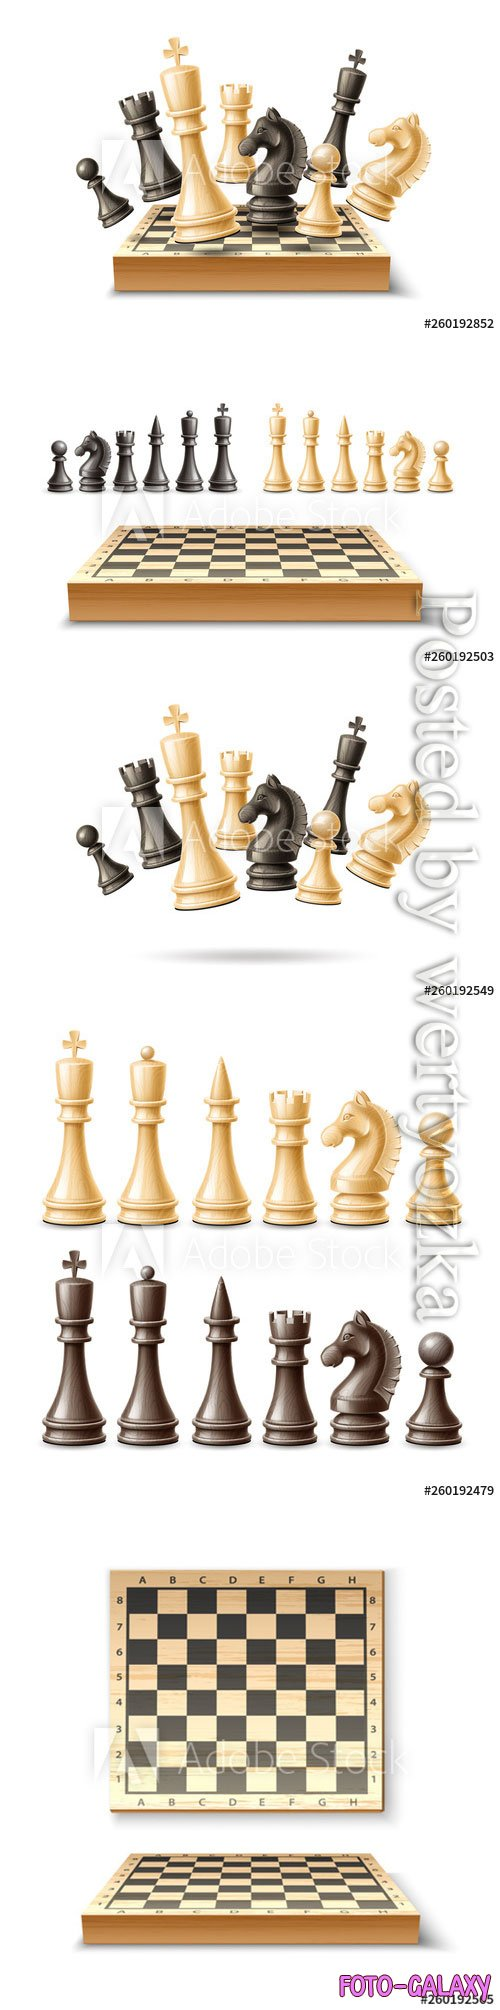 Realistic chess pieces and chessboard set vector illustrations